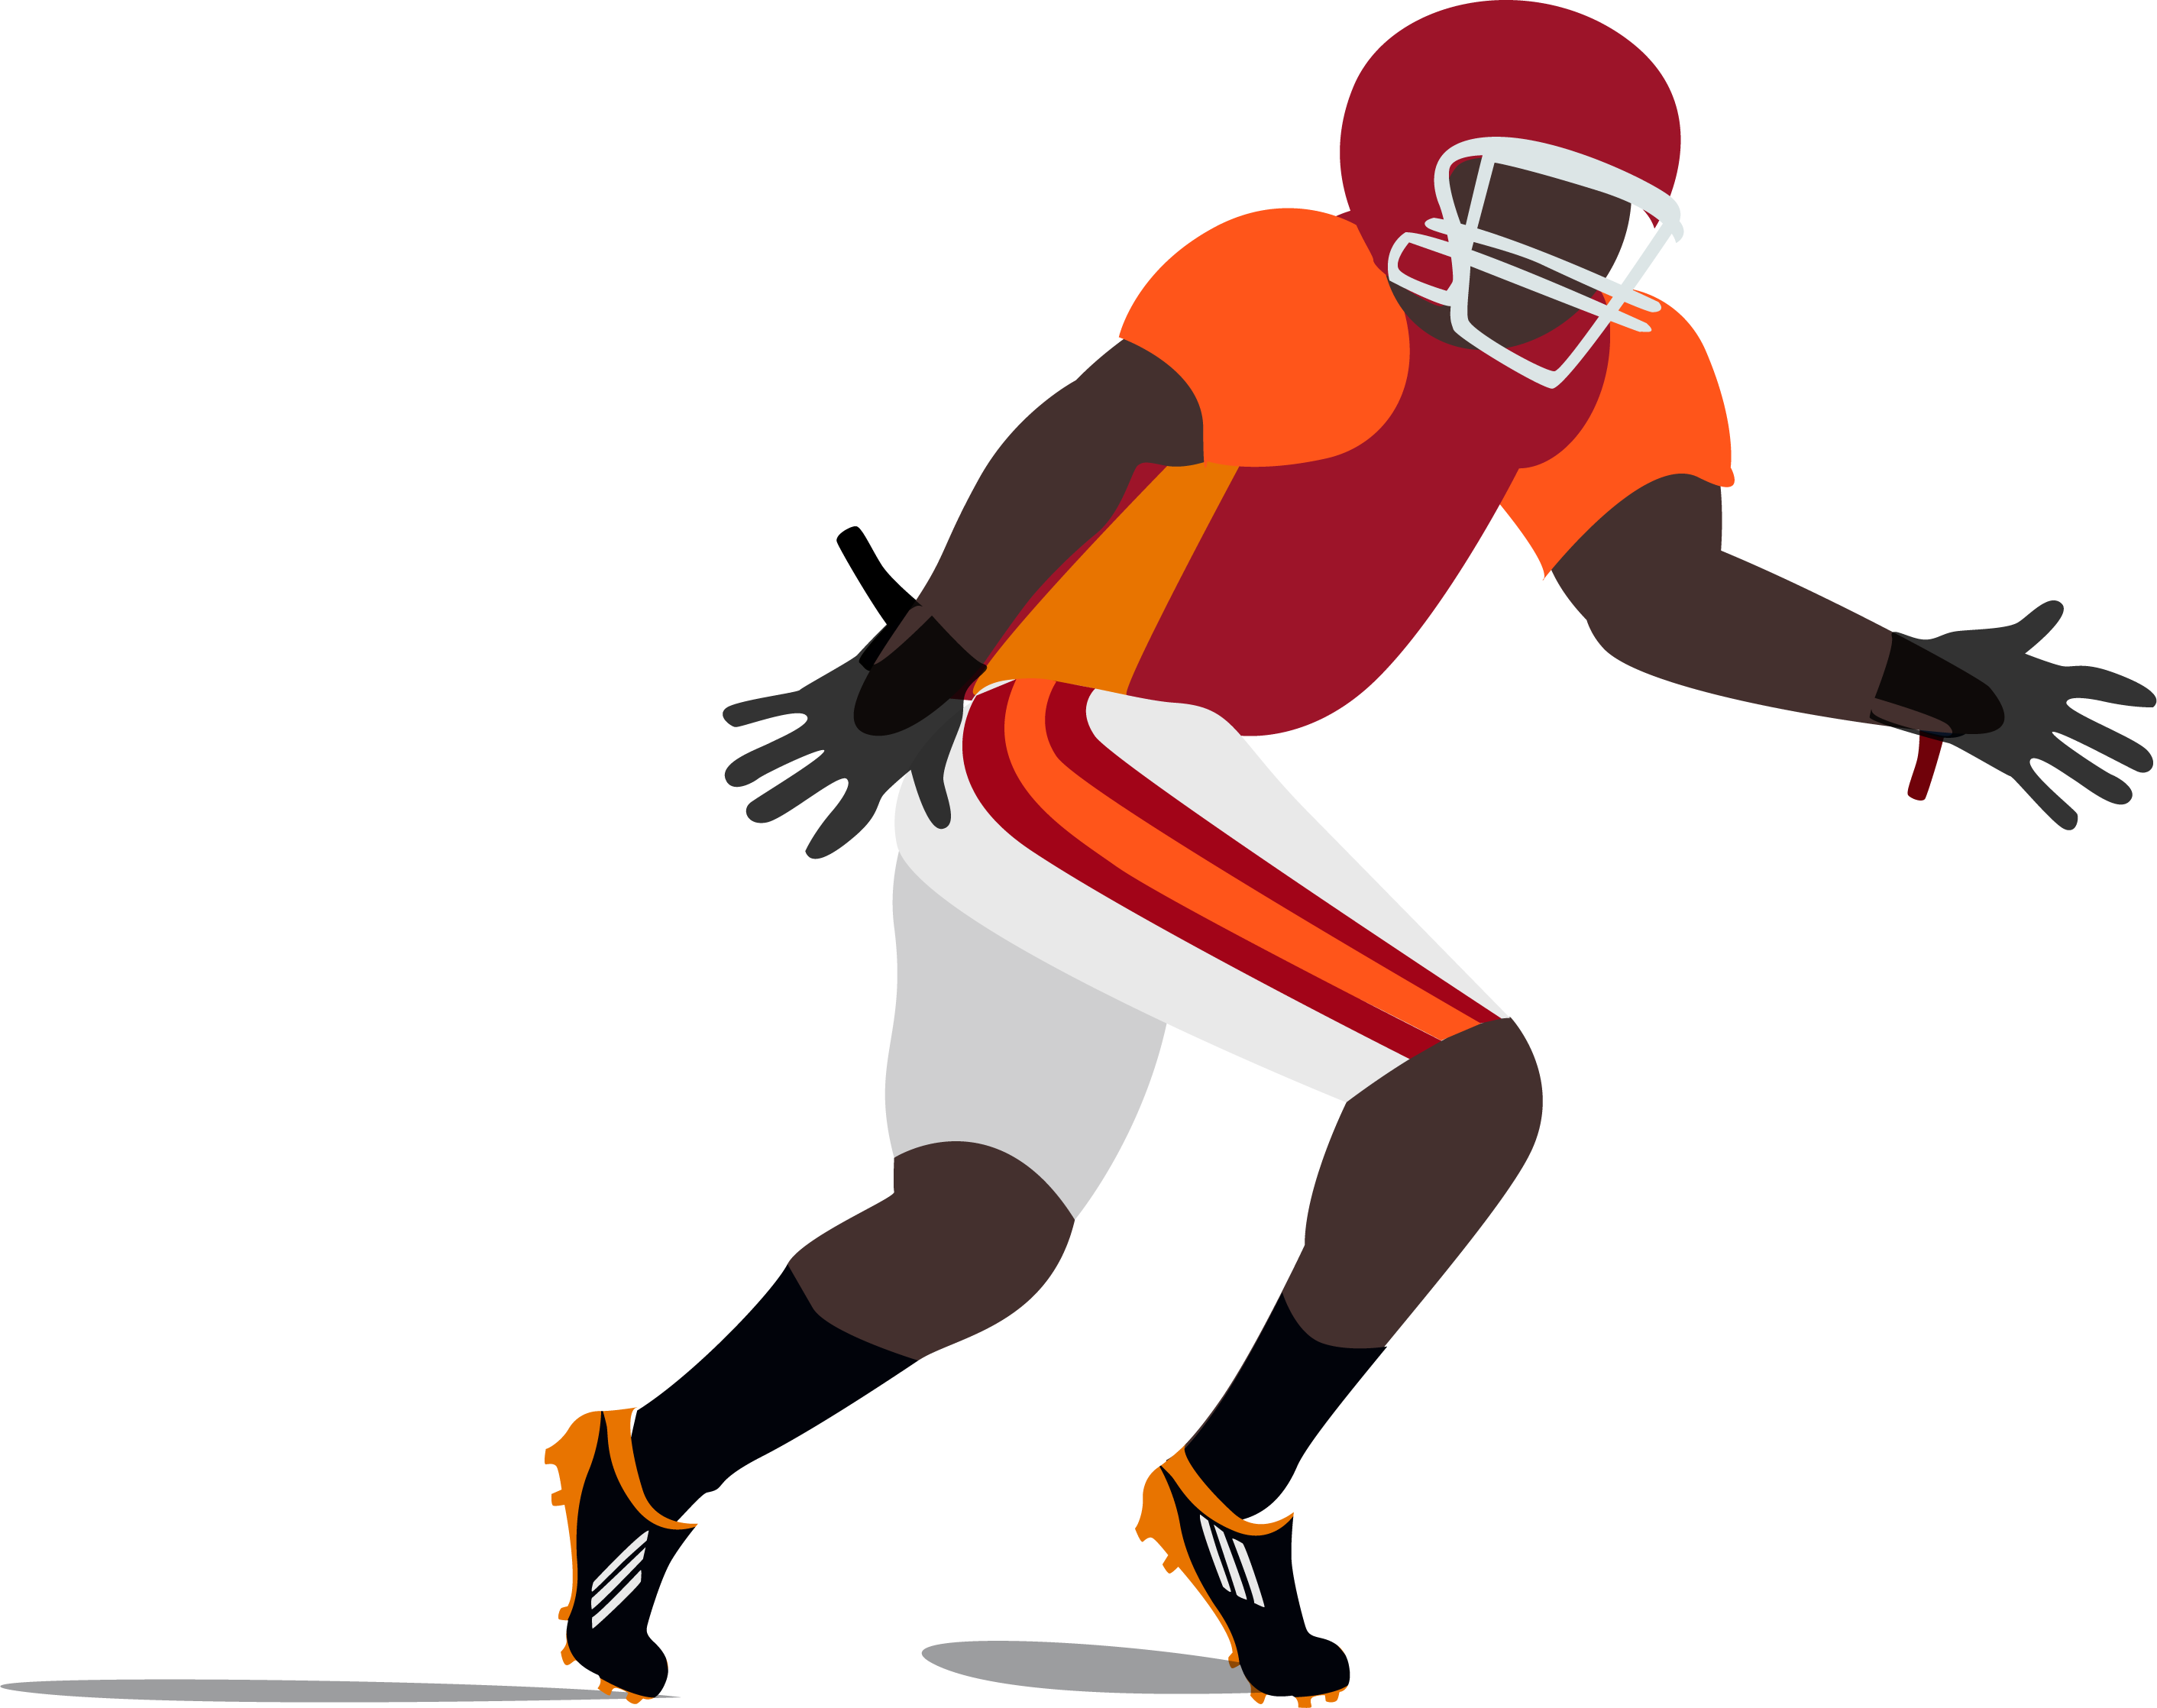 Clipart of a coach grabbing a football player free download The Student Section: OZY\'s College Football Crash Course | The ... free download